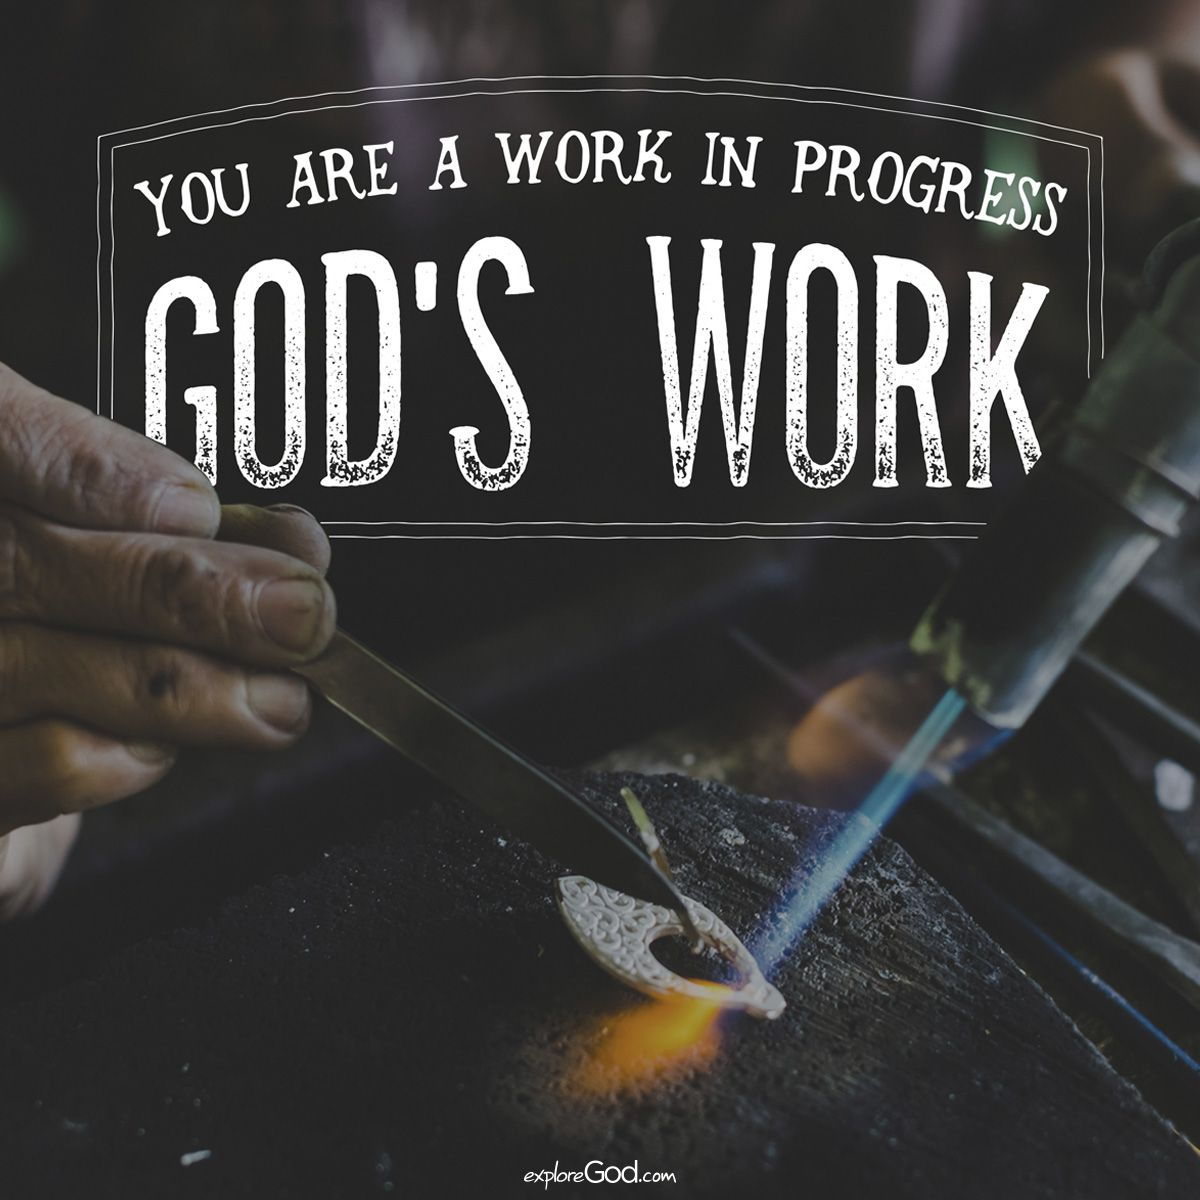 You are a work in progress. God's work.